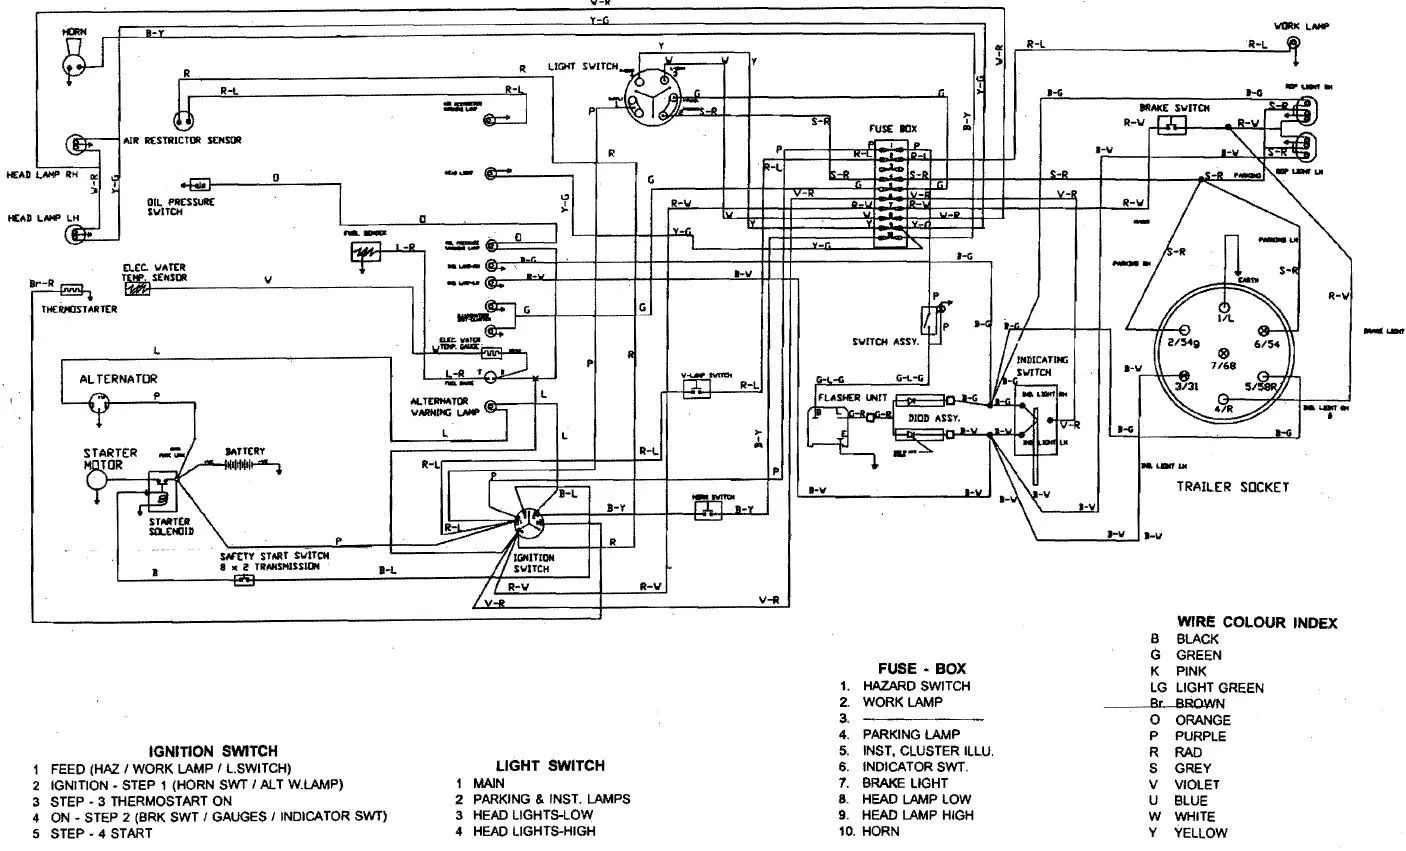 2001 ford expedition ignition wiring diagram